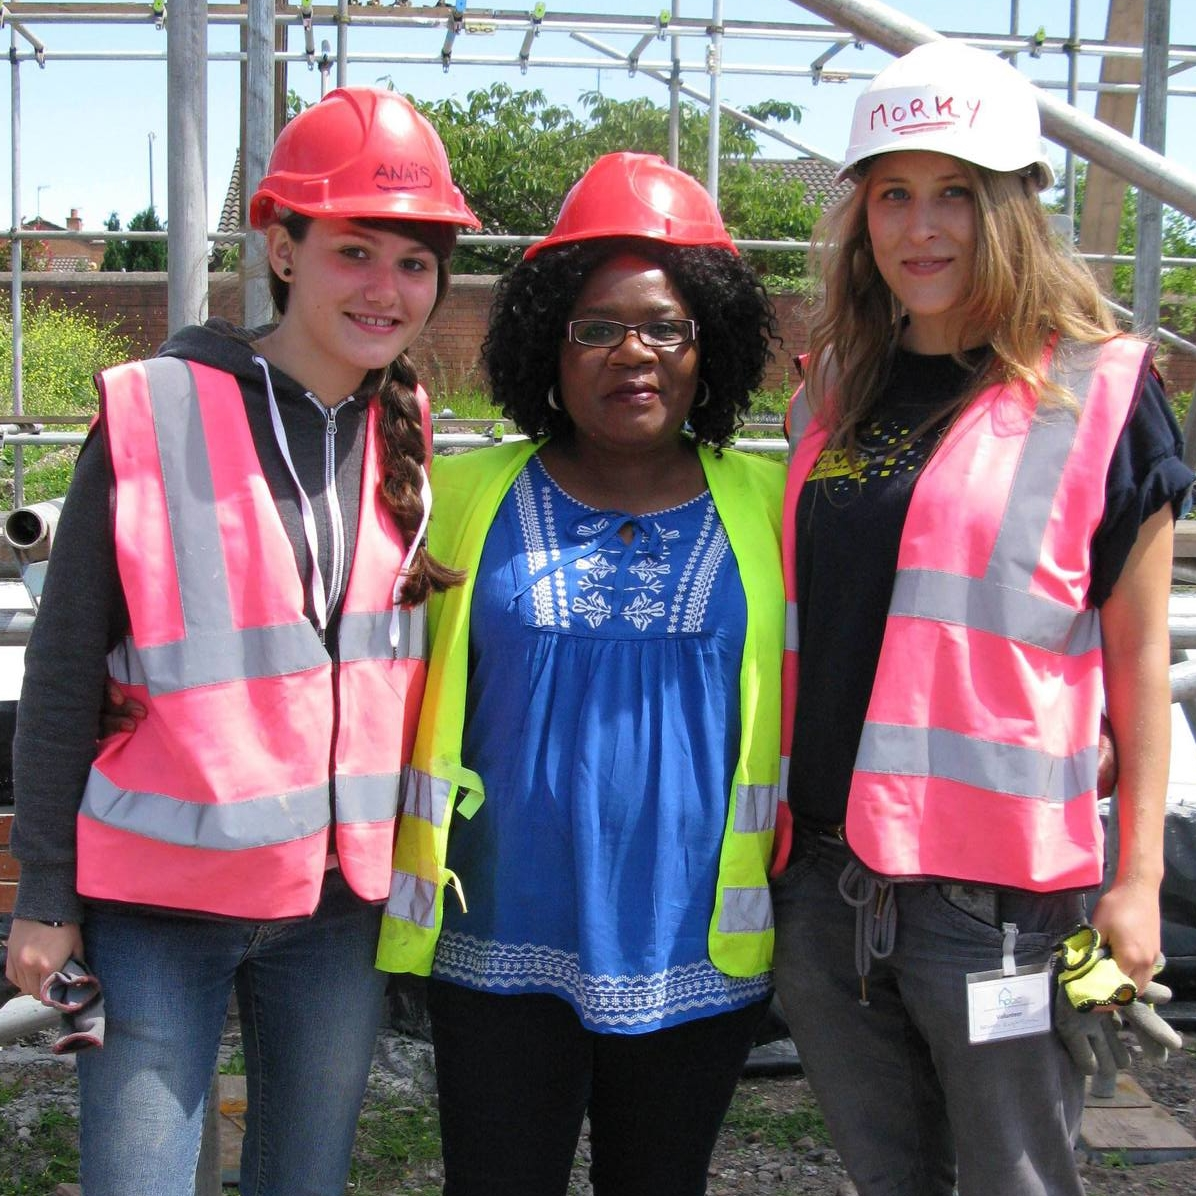 HPBC's homes are built largely by volunteers, including the home partners themselves. Home partner Joyce Msiska (ctr) with two French students currently volunteering on site, Anais Lameira (left) and Angelique Brouard.